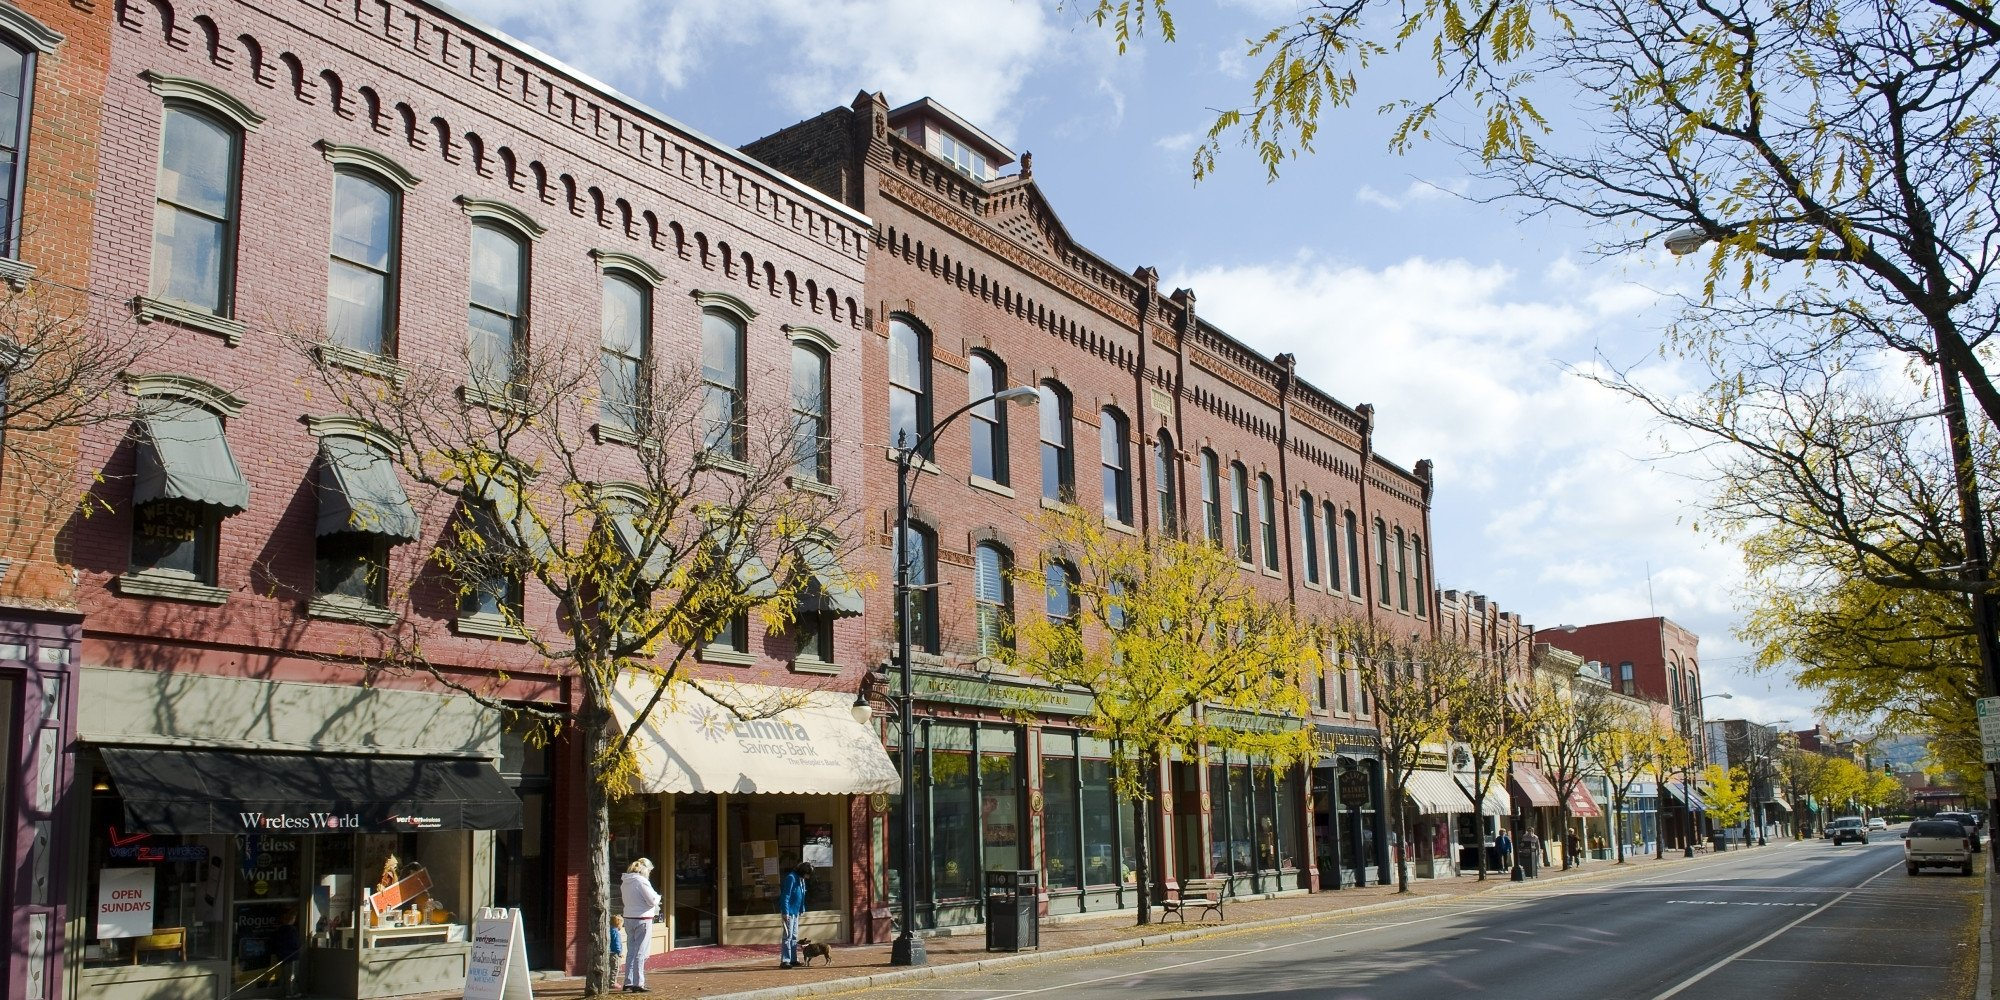 10 Unique Business Ideas For A Small Town americas best small towns according to rand mcnally huffpost 2020